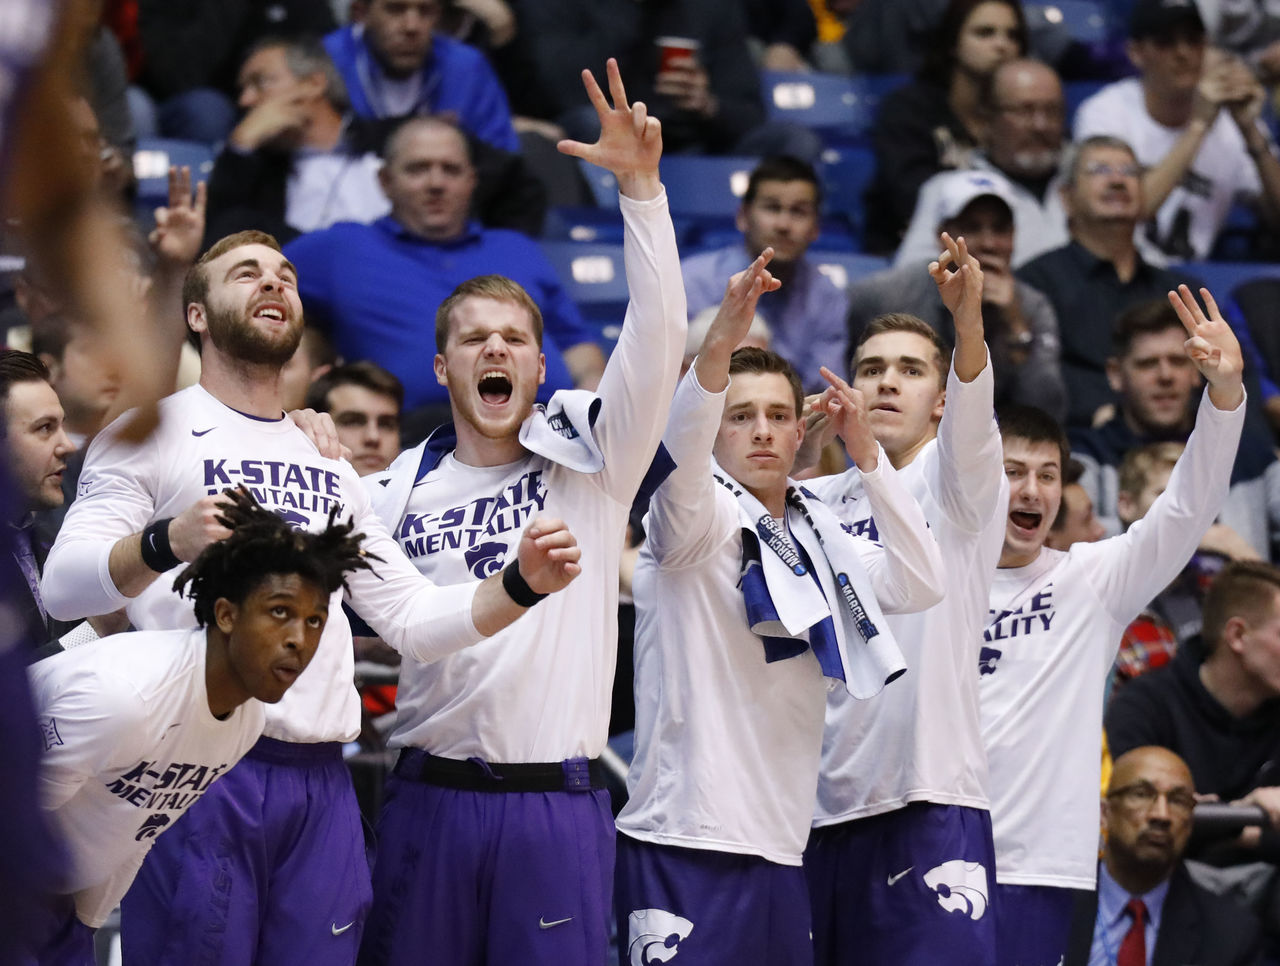 Cropped_2017-03-15t035009z_550585119_nocid_rtrmadp_3_ncaa-basketball-ncaa-tournament-first-four-kansas-state-vs-wake-forest